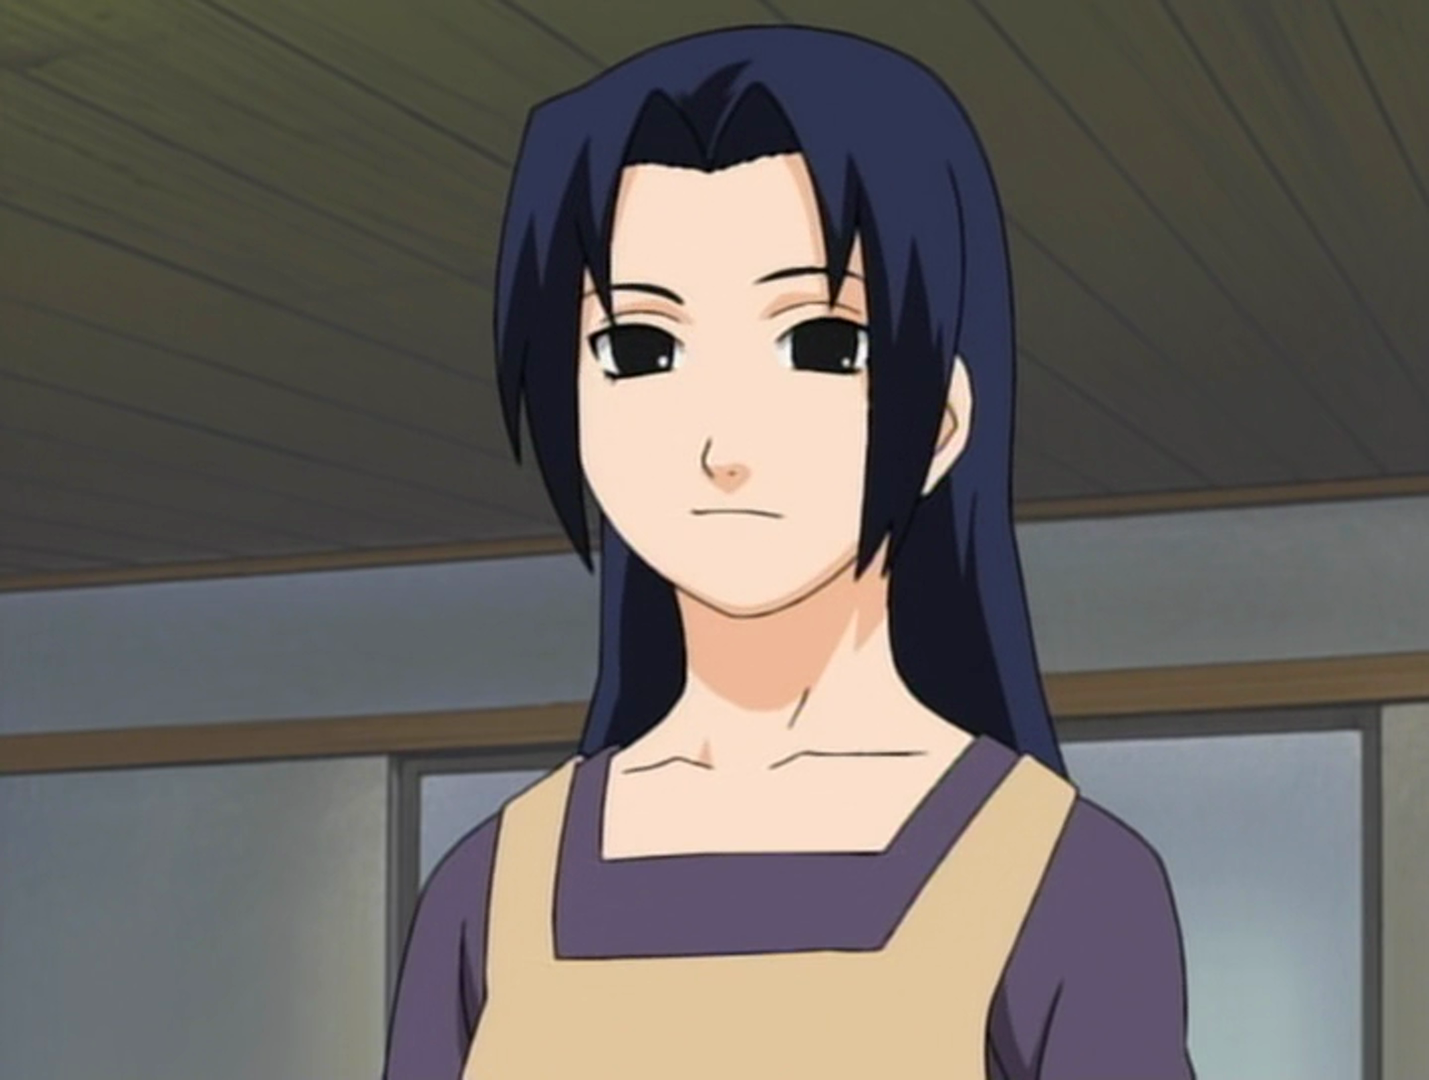 Mikoto Uchiha | Narutopedia | FANDOM powered by Wikia